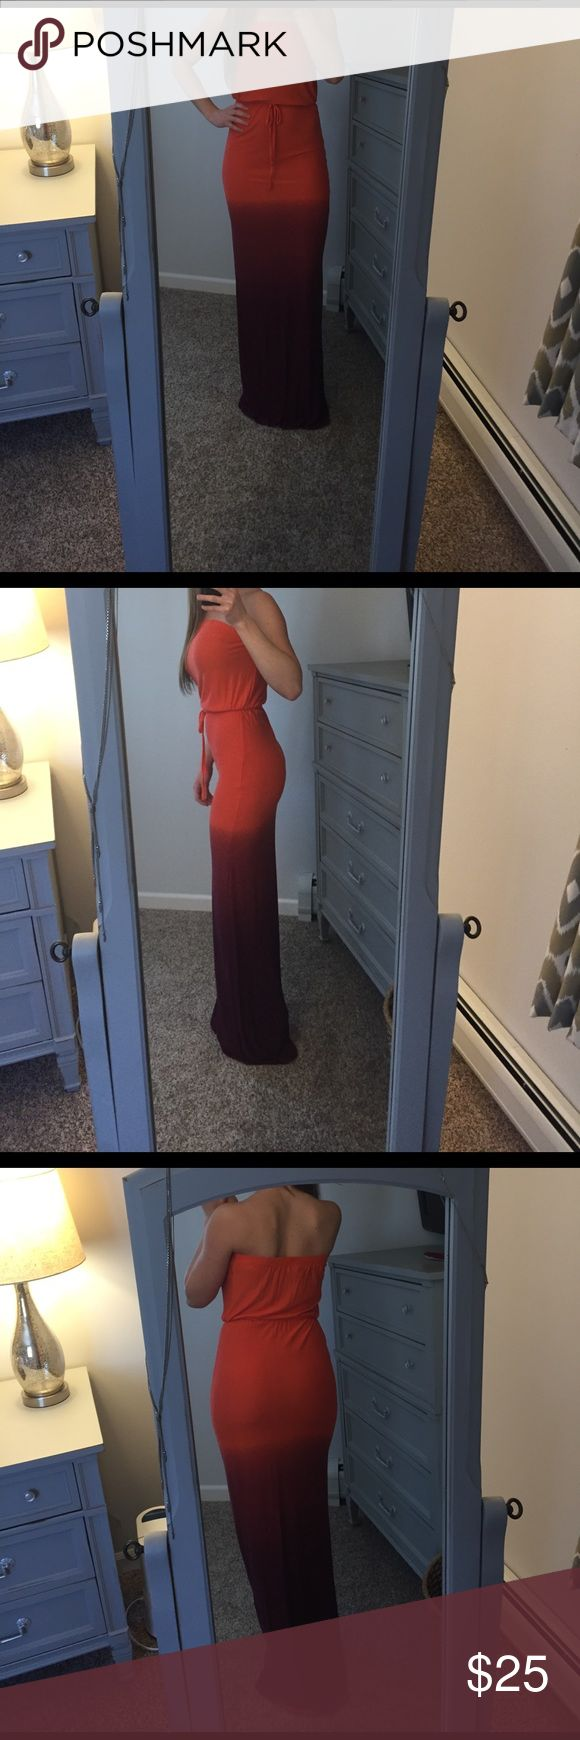 Long ombré salmon to maroon long dress NWOT Beautiful long ombré dress. Size Small, salmon/maroon. Old Navy Dresses Maxi